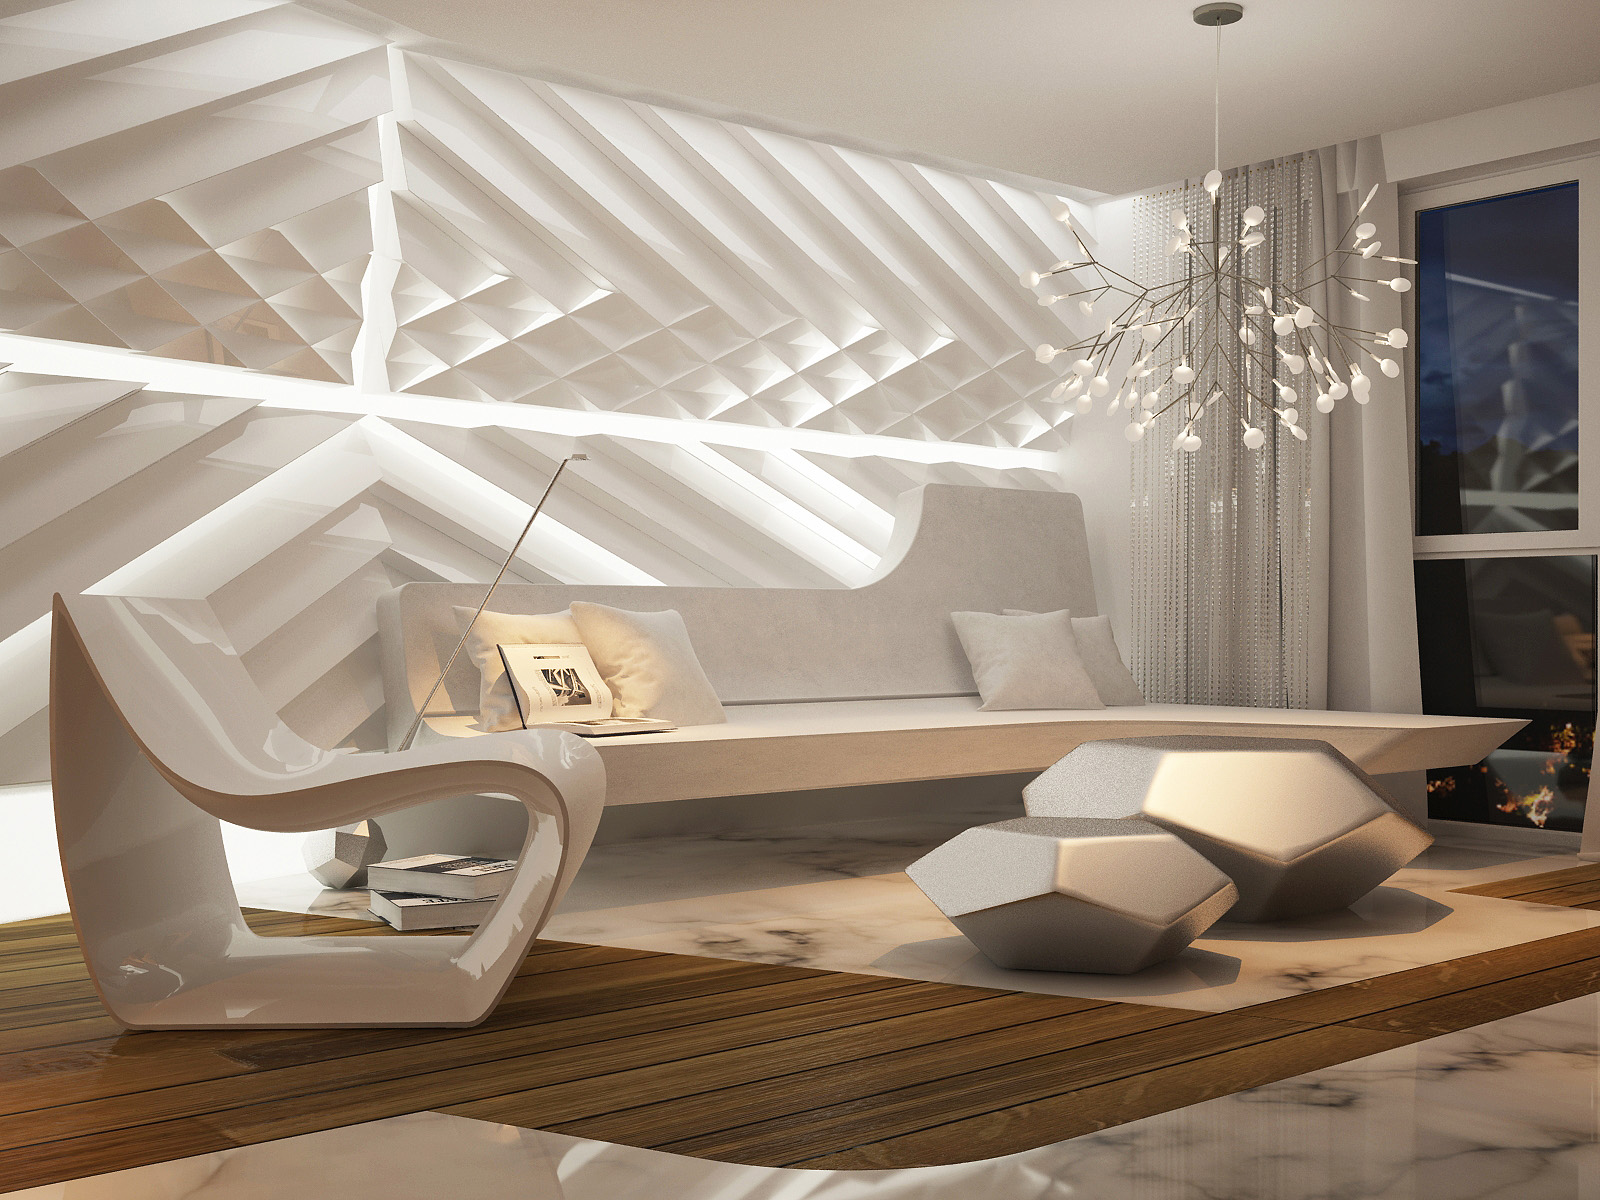 Futuristic interior design for White walls interior design ideas